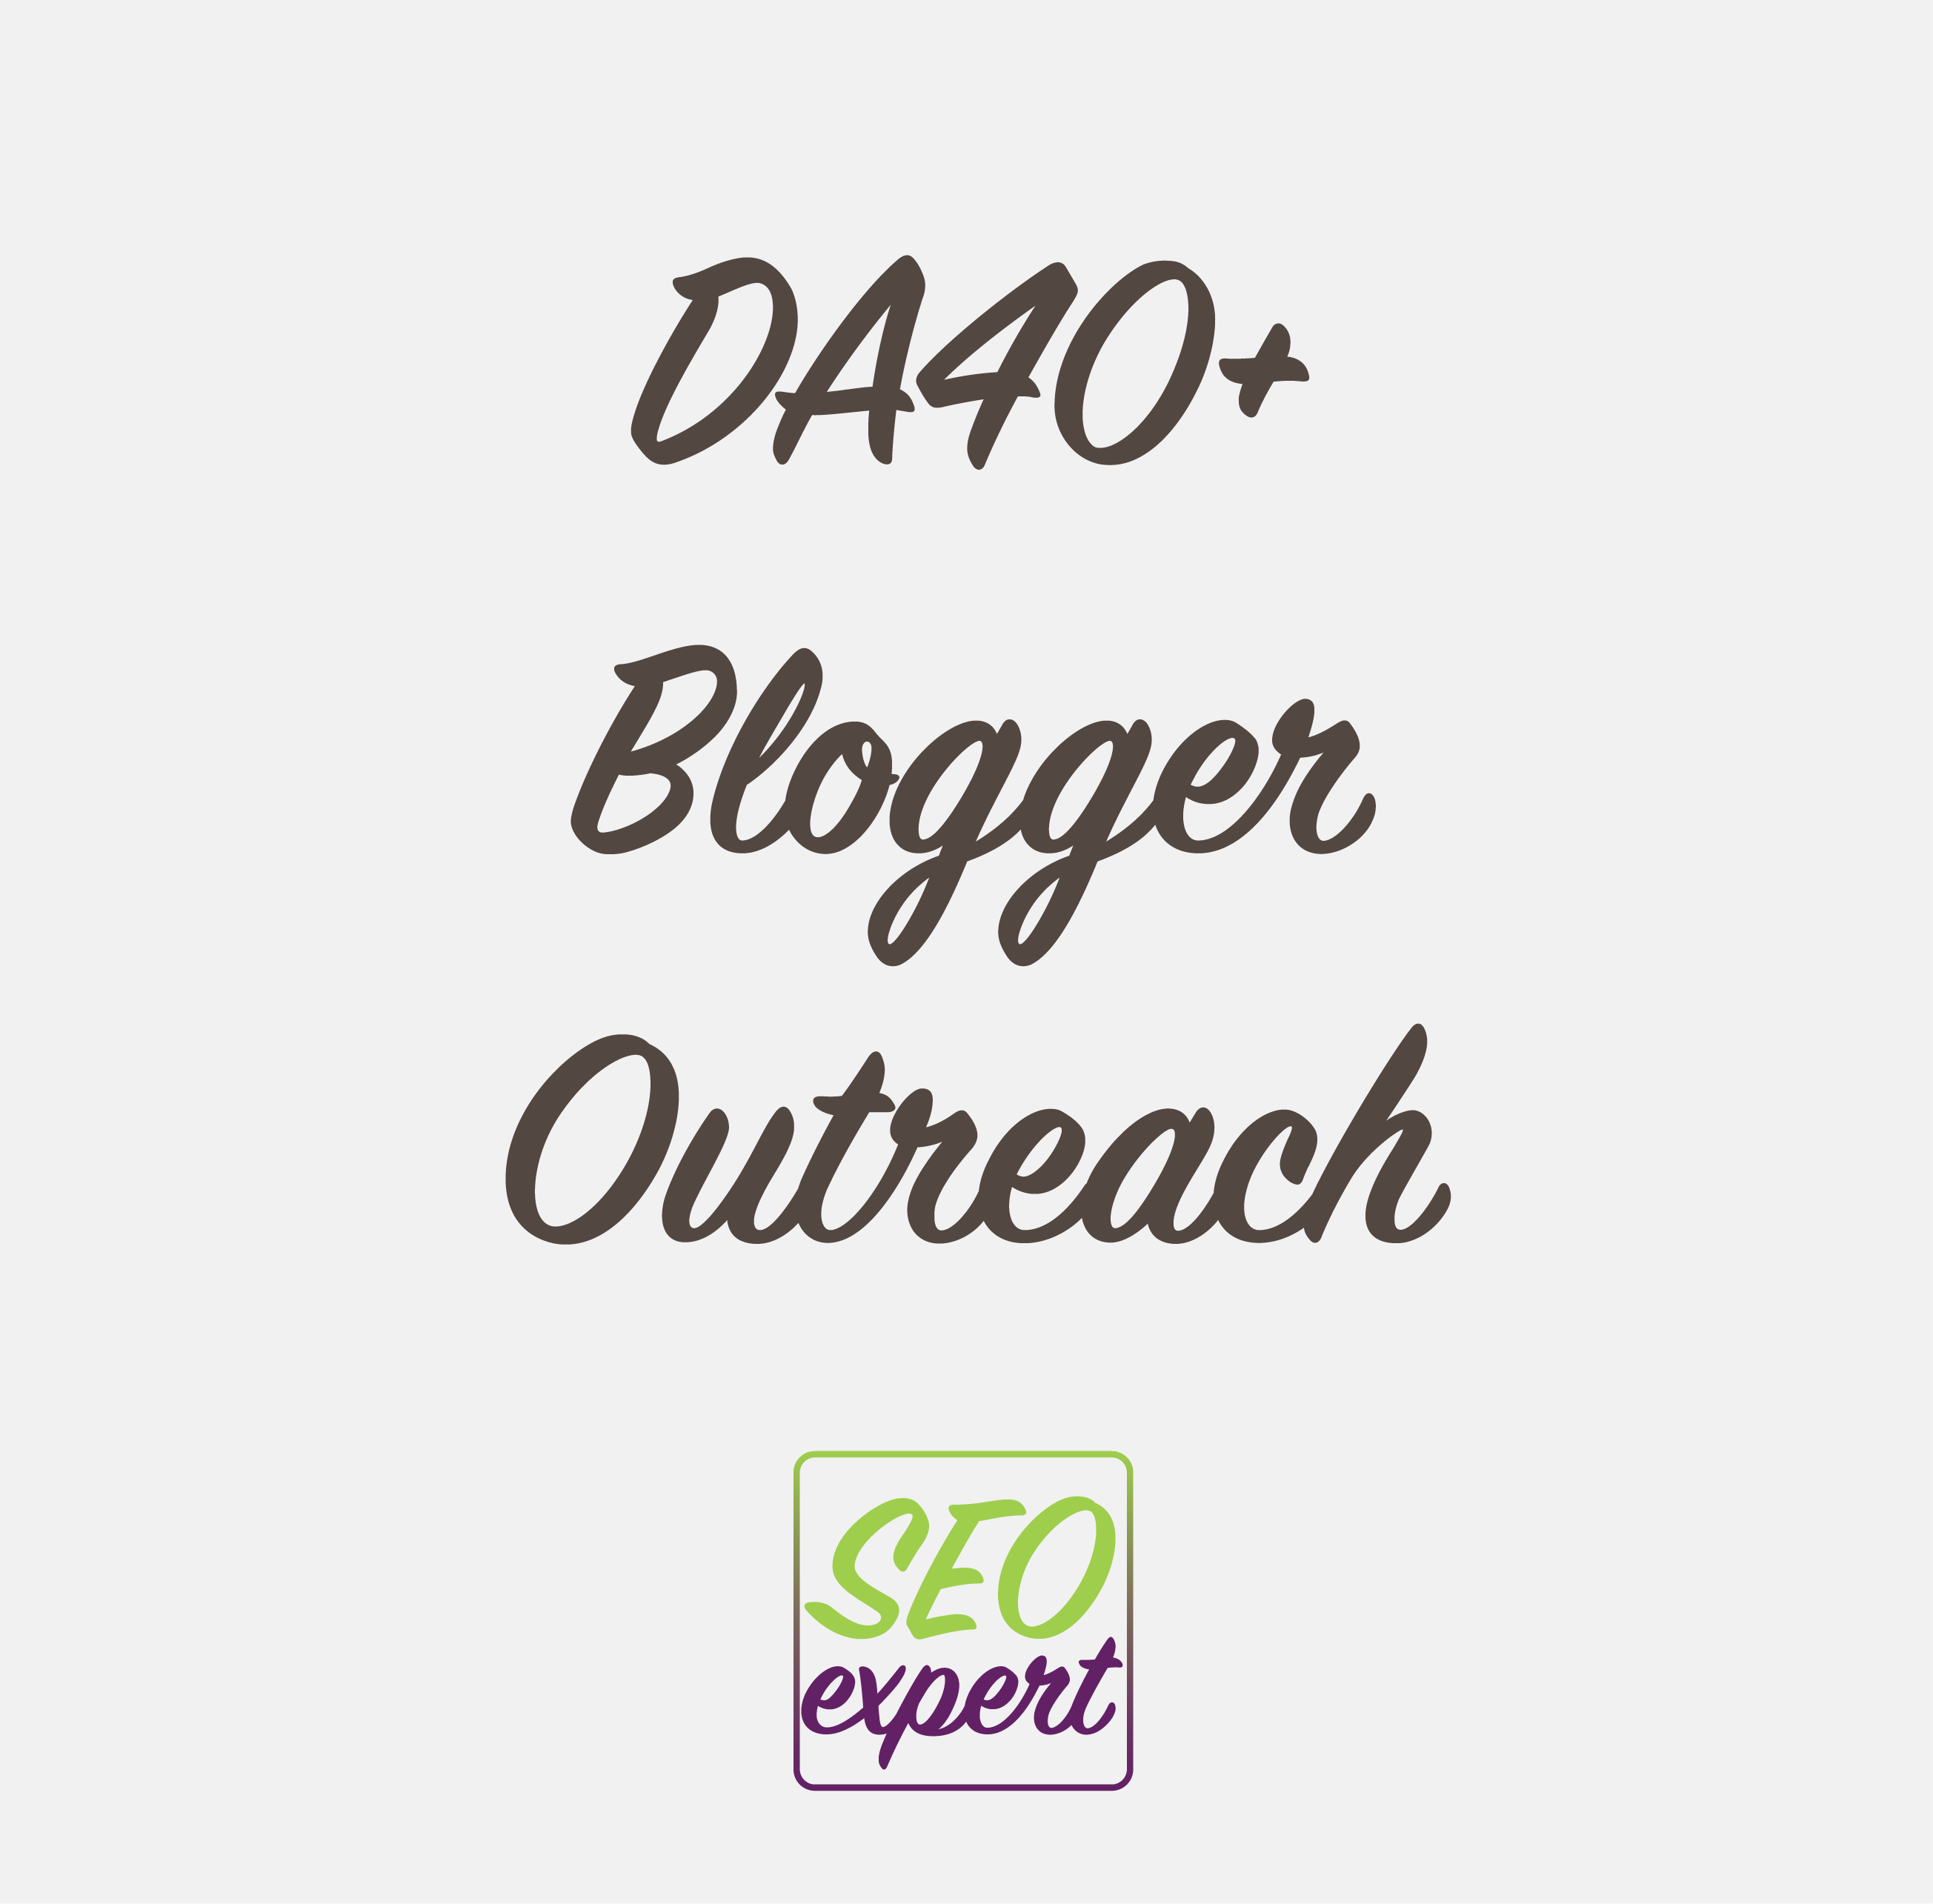 DA40 Blogger Outreach